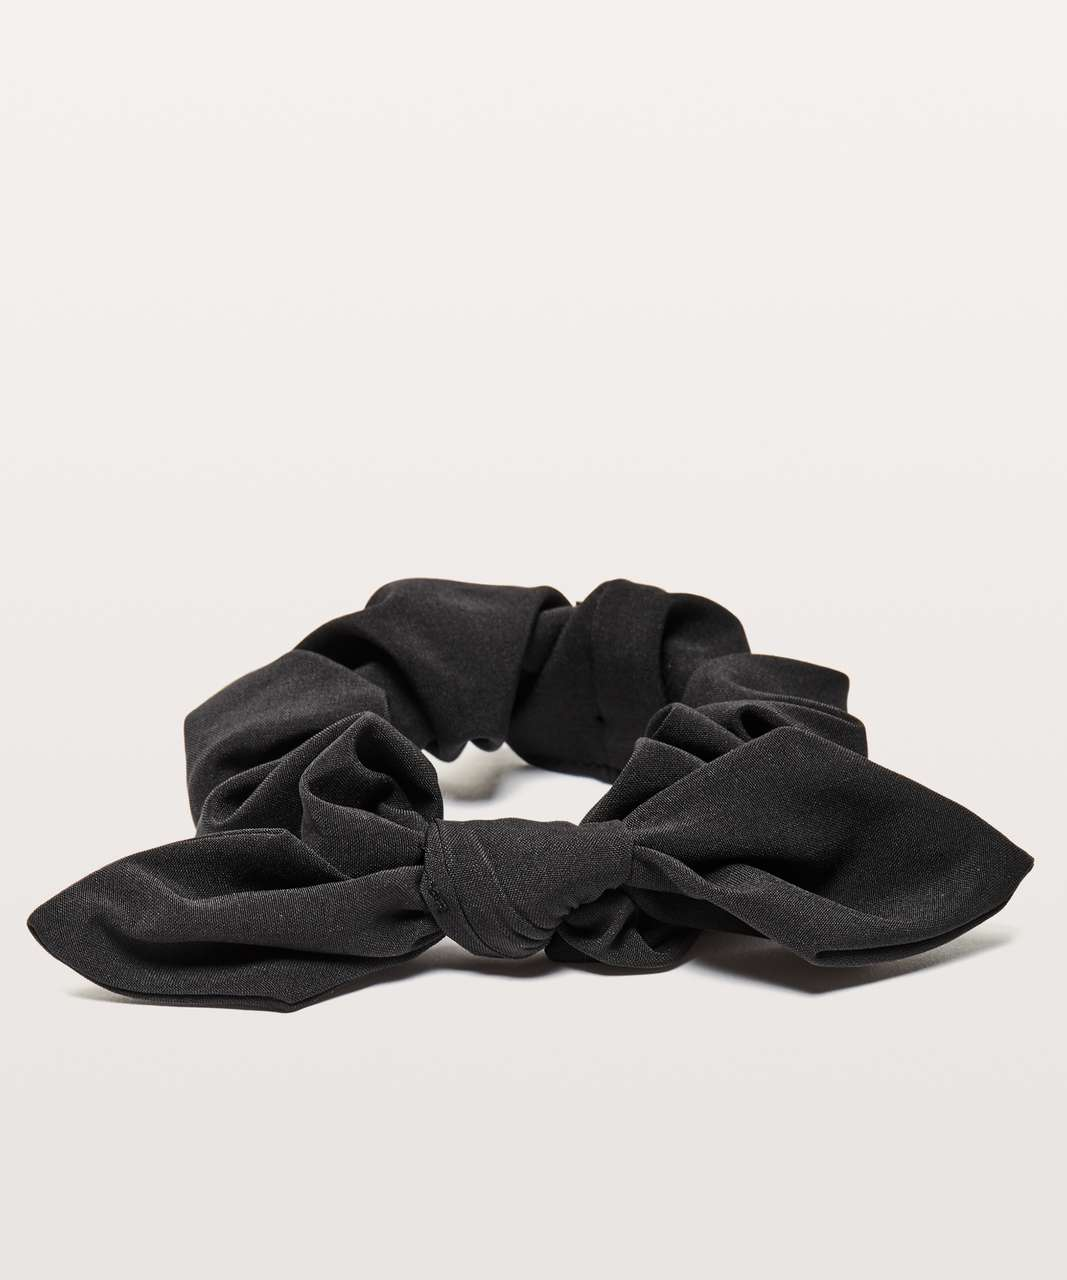 Lululemon Uplifting Scrunchie *Bow - Black